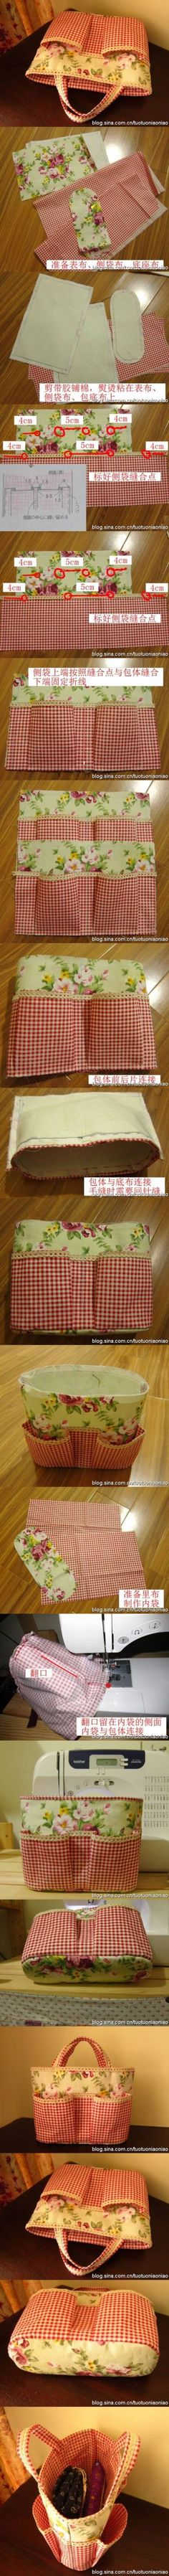 DIY Shop Bags DIY Projects